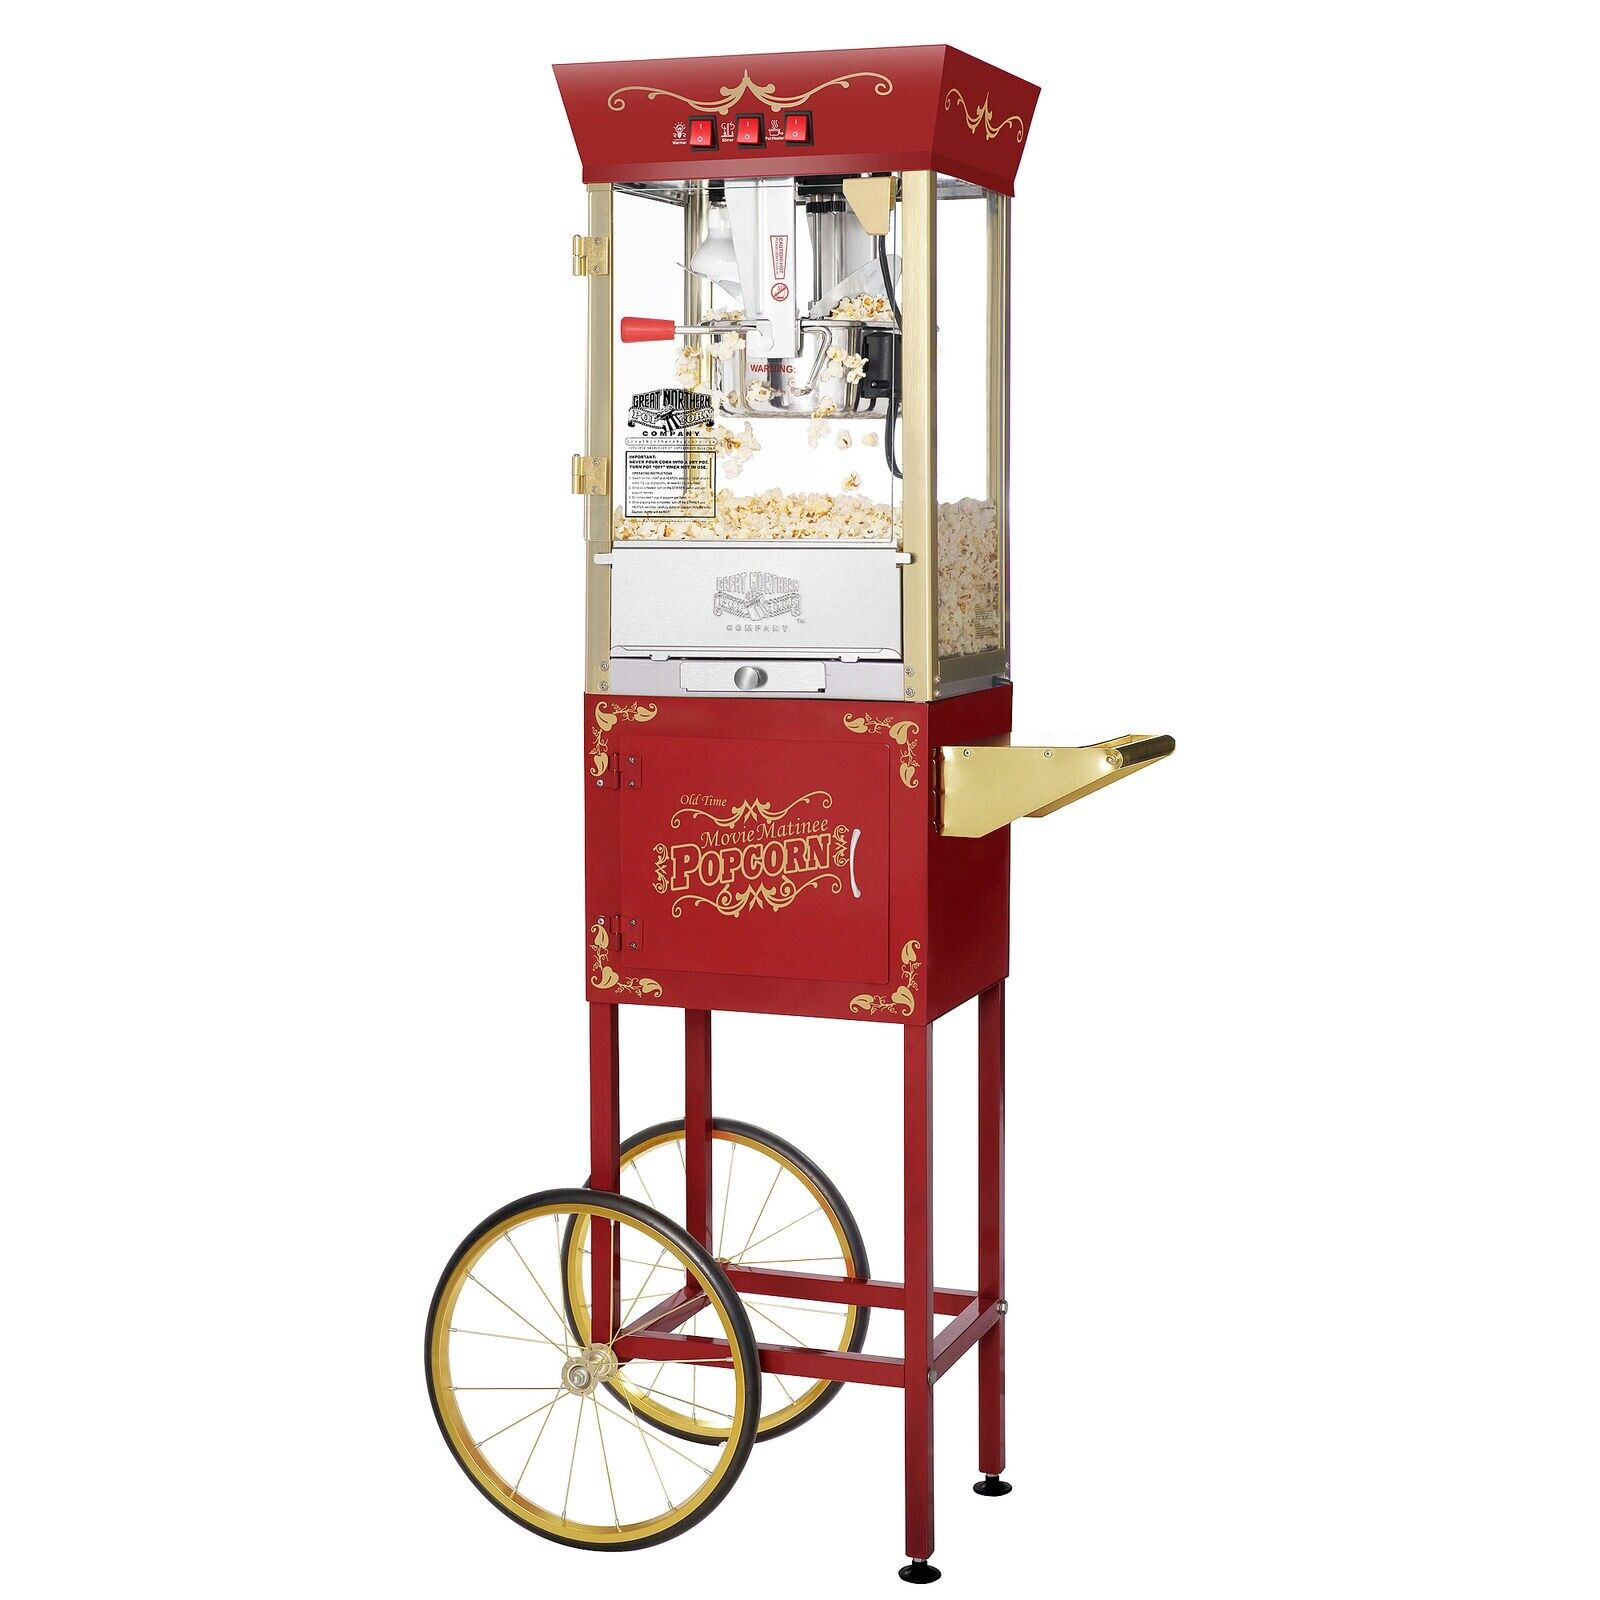 Great Northern Popcorn Red Matinee Style Popcorn Popper with